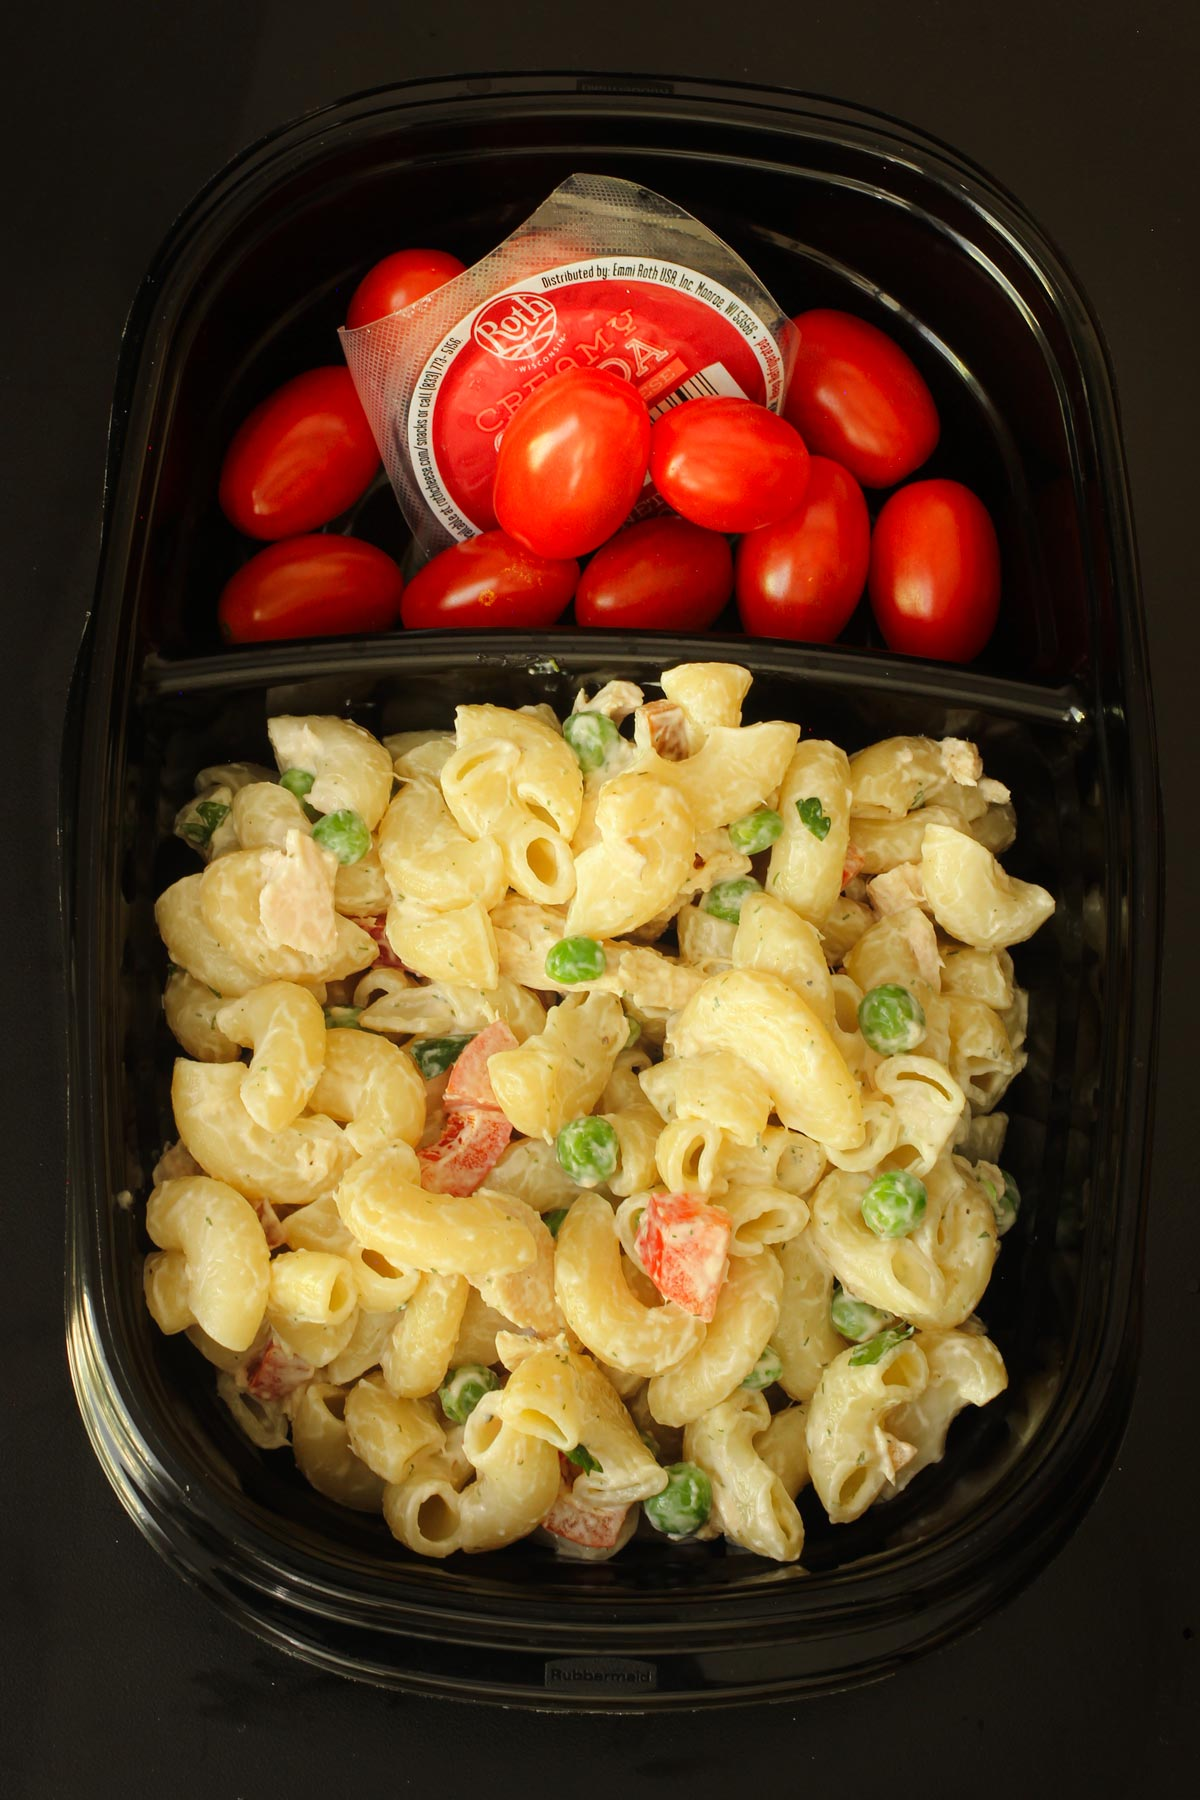 tuna pasta salad in sectioned black meal prep dish with grape tomatoes and snacking cheese in other section.